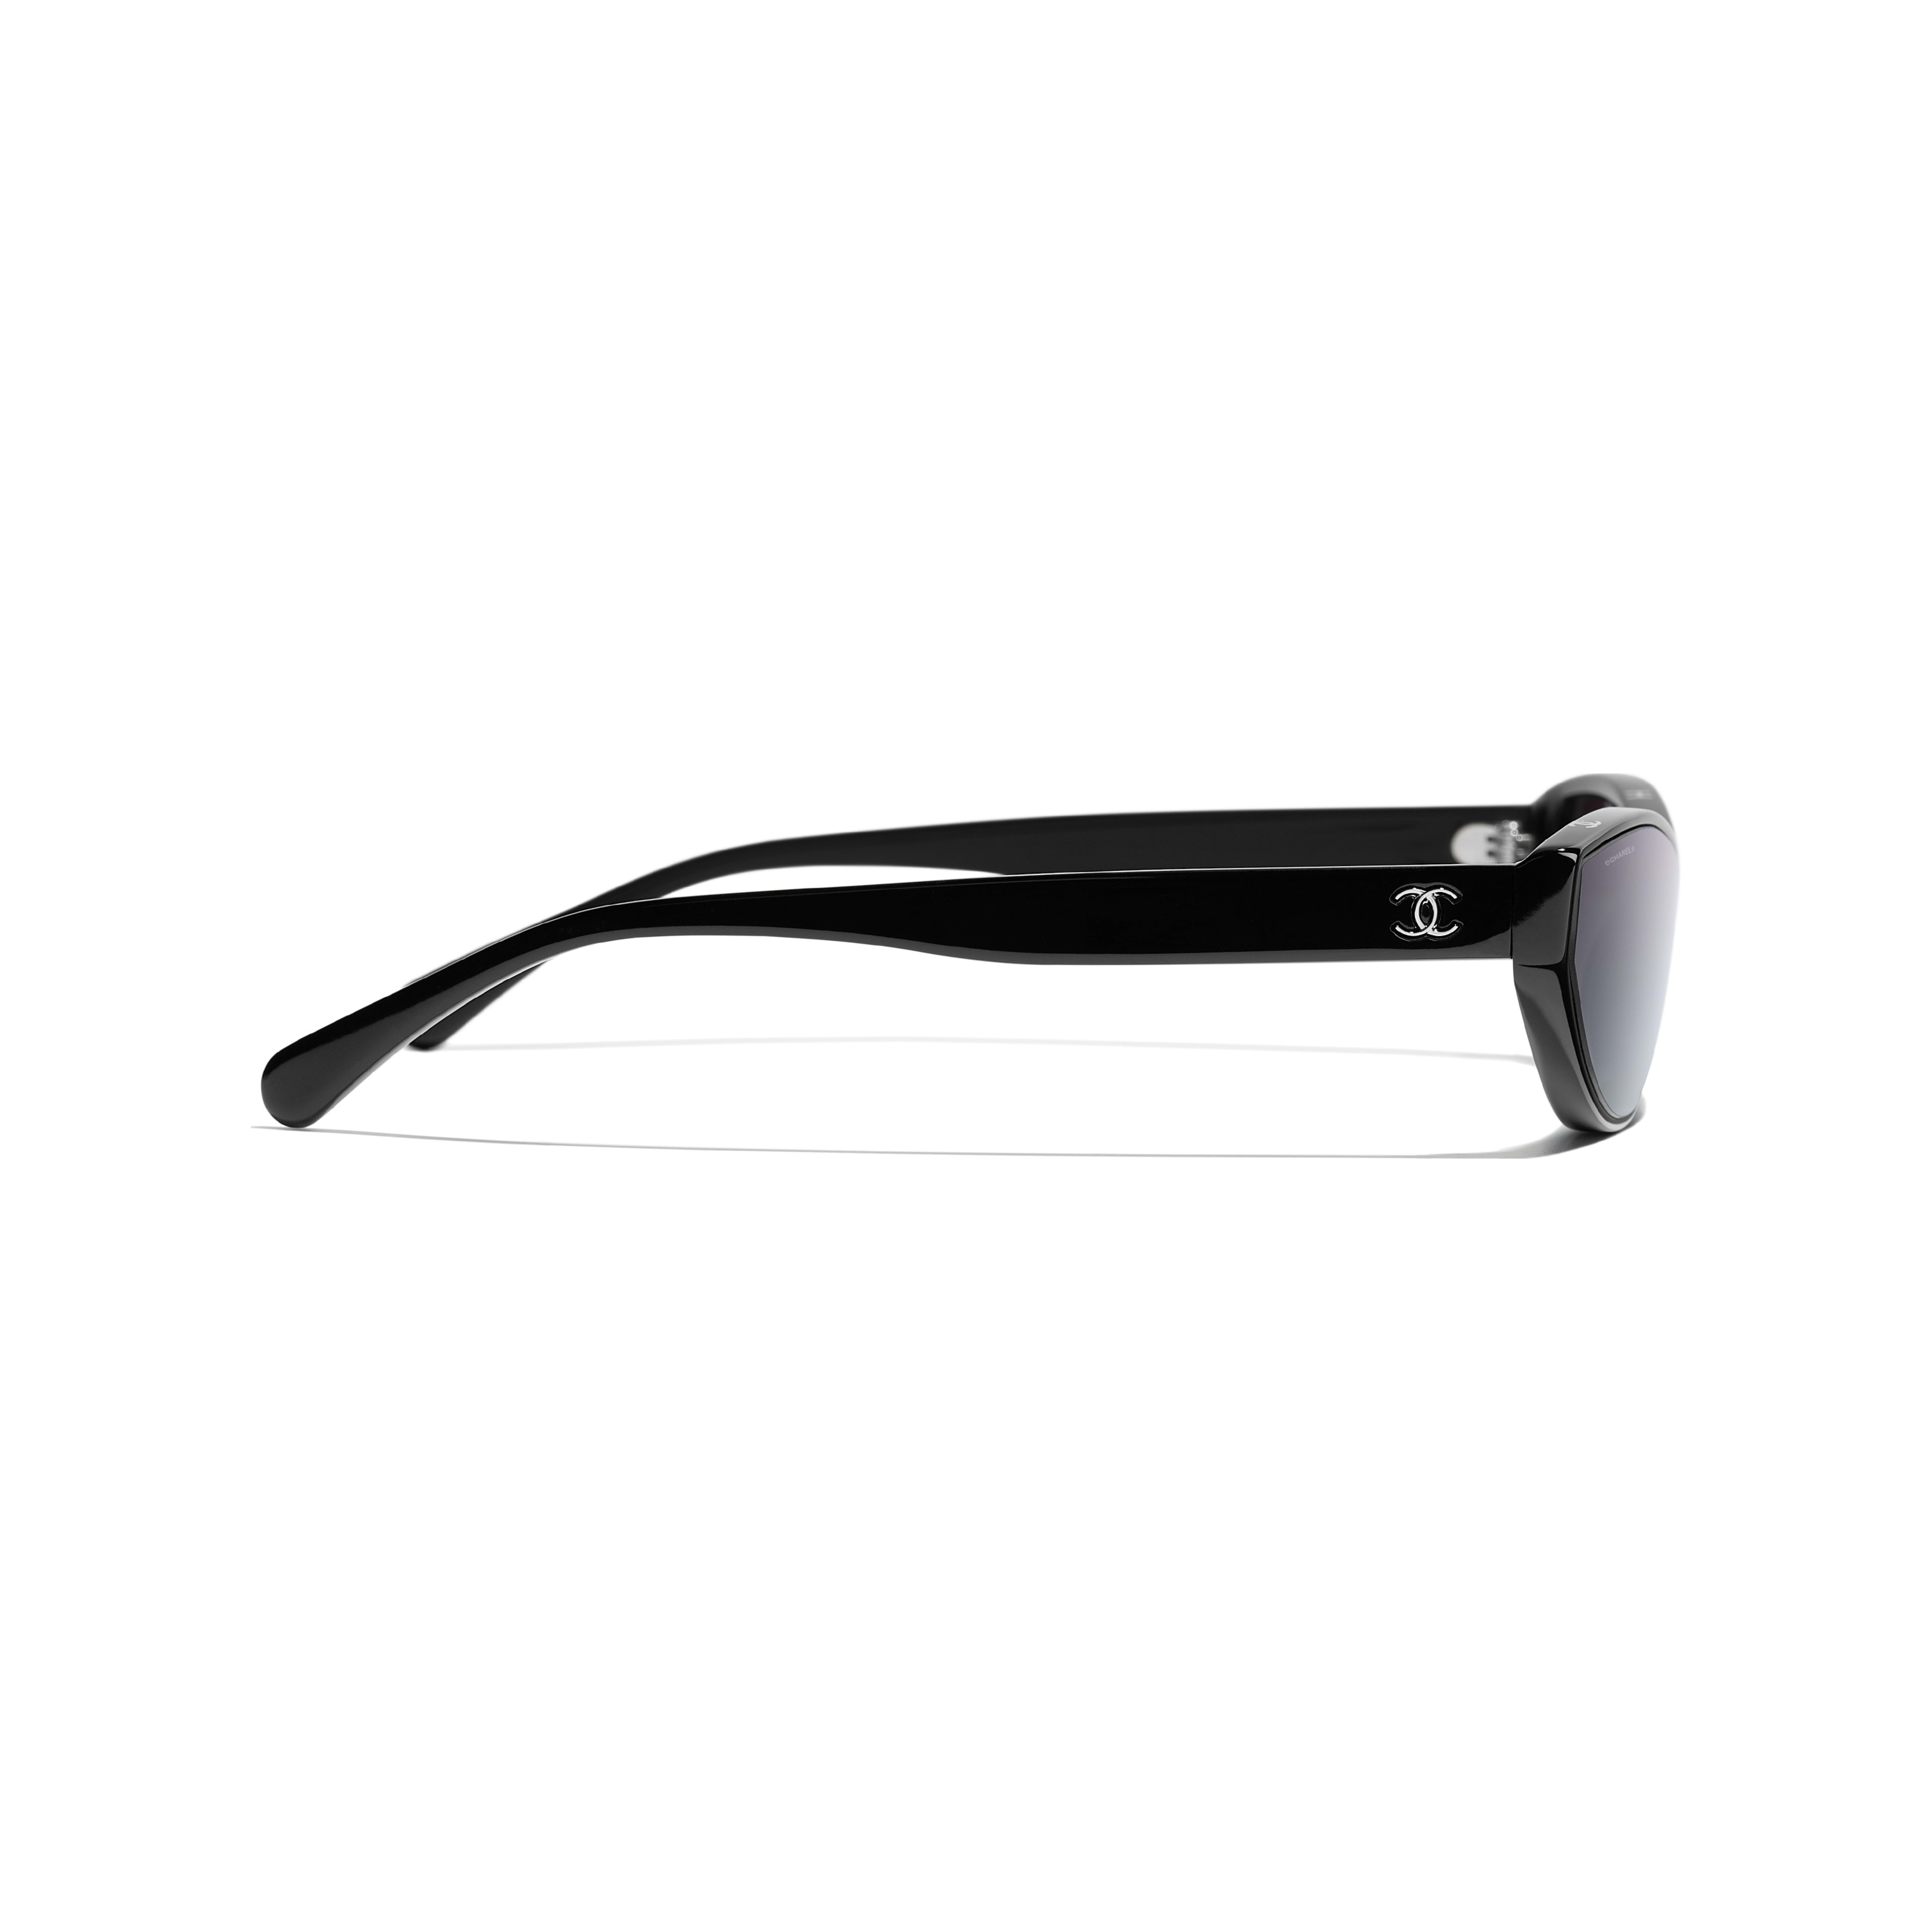 Cat Eye Sunglasses - Black - Acetate - Other view - see full sized version